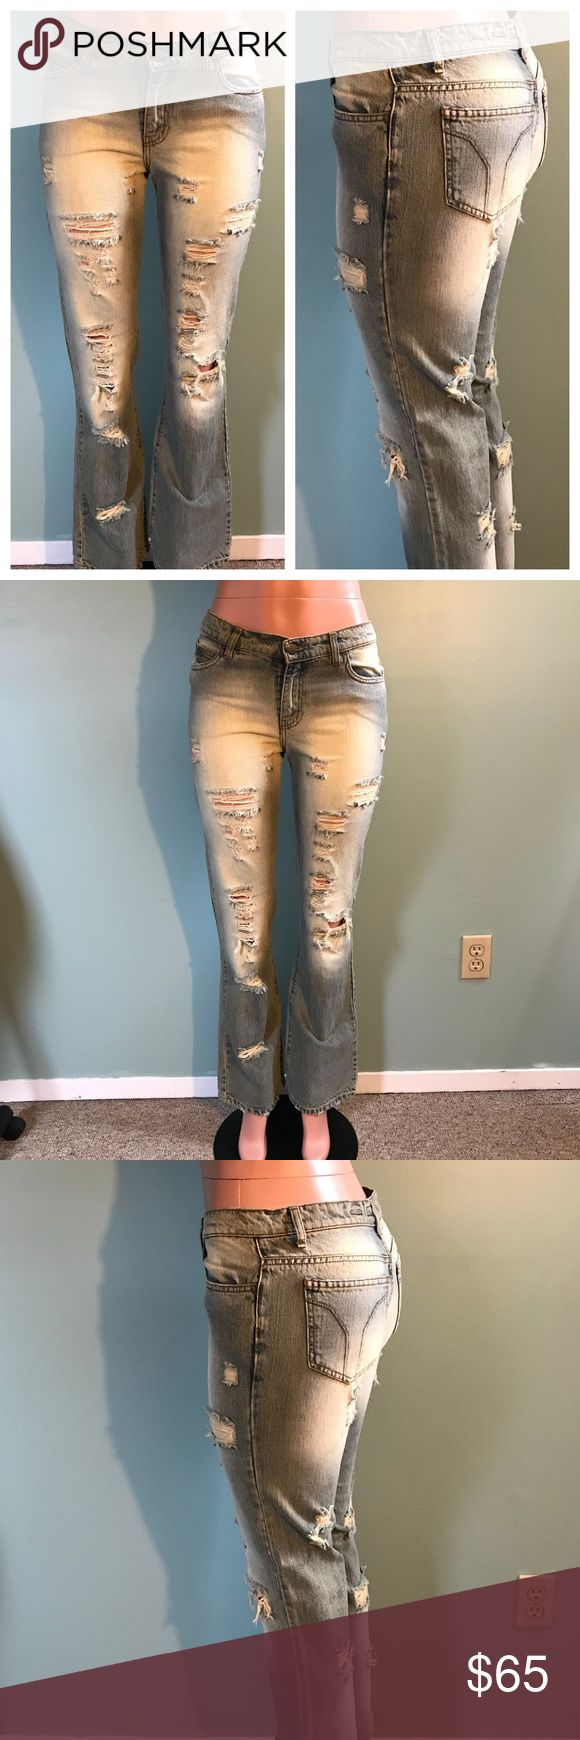 """MISS SIXTY Rare Destroyed Denim Bootcut Jeans 30 Too small for me. Size 30 but low fitting waist. Waist measures 15.5"""", rise is 9"""", and length is 32"""". Paid almost $200 for these, and they are very rare. Italian made by Miss Sixty. Destroyed look, super hot! Tags removed, never worn! Please ask any questions. Bundle discounts and daily shipping available. Happy Poshing! Miss Sixty Jeans Boot Cut"""